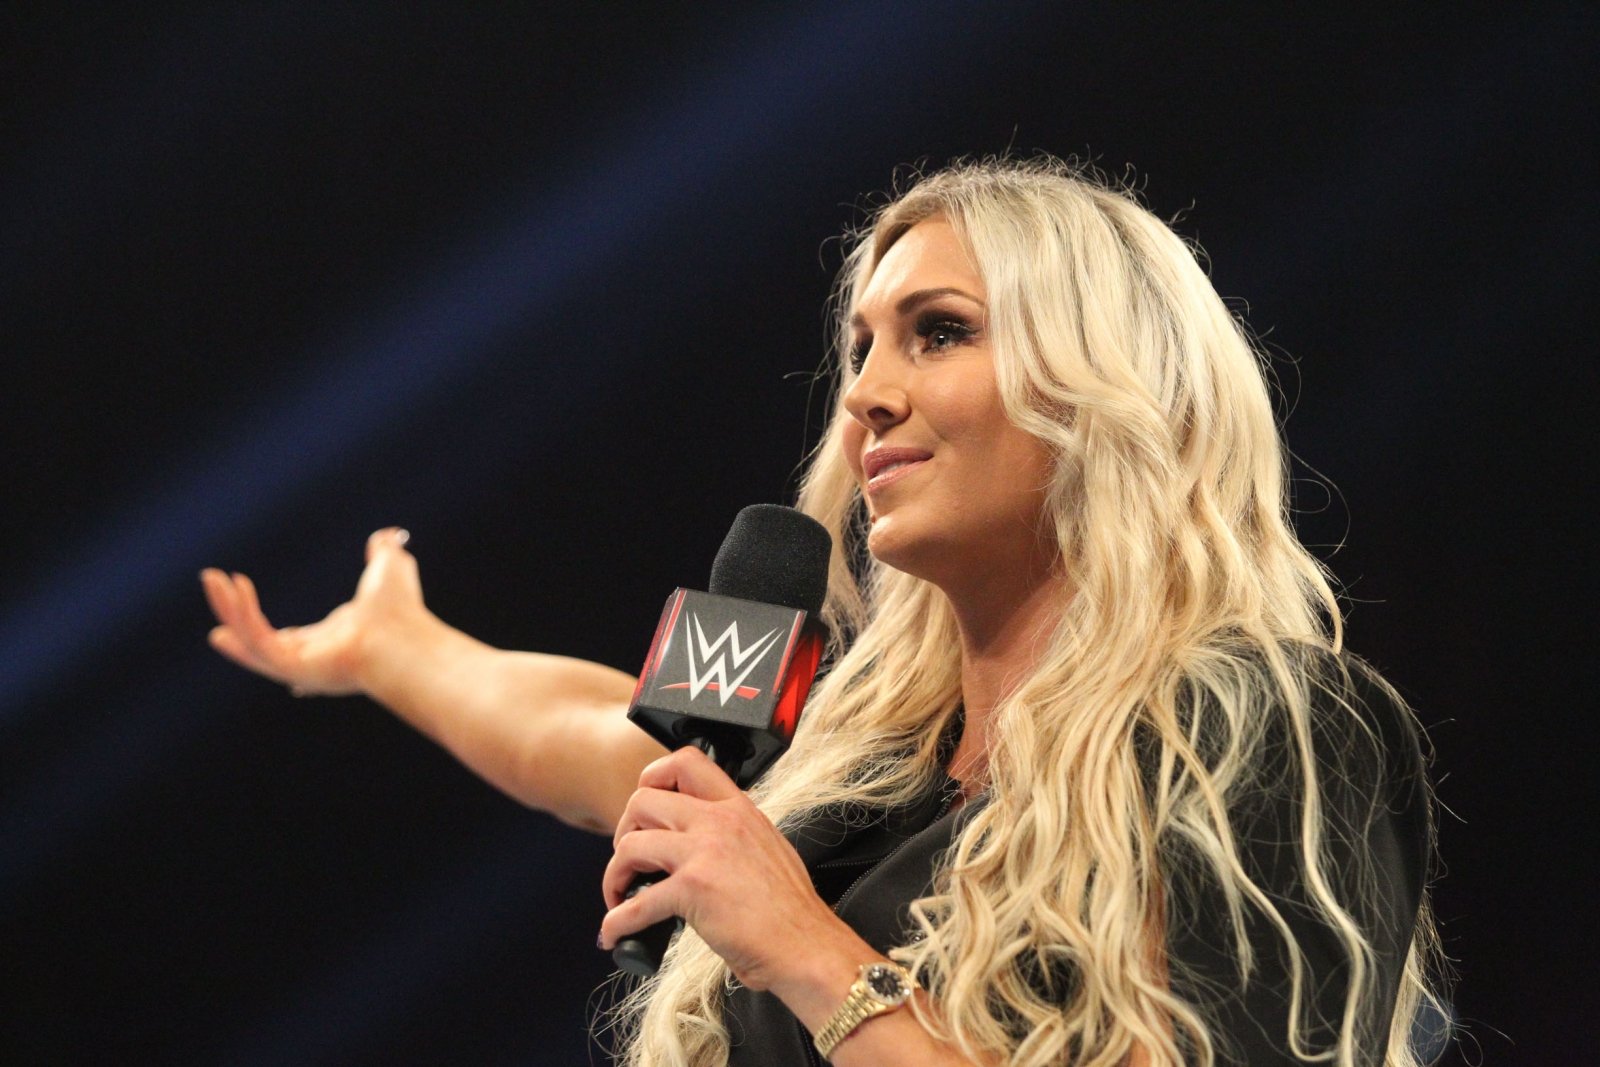 TheFappening: Charlotte Flair Nude